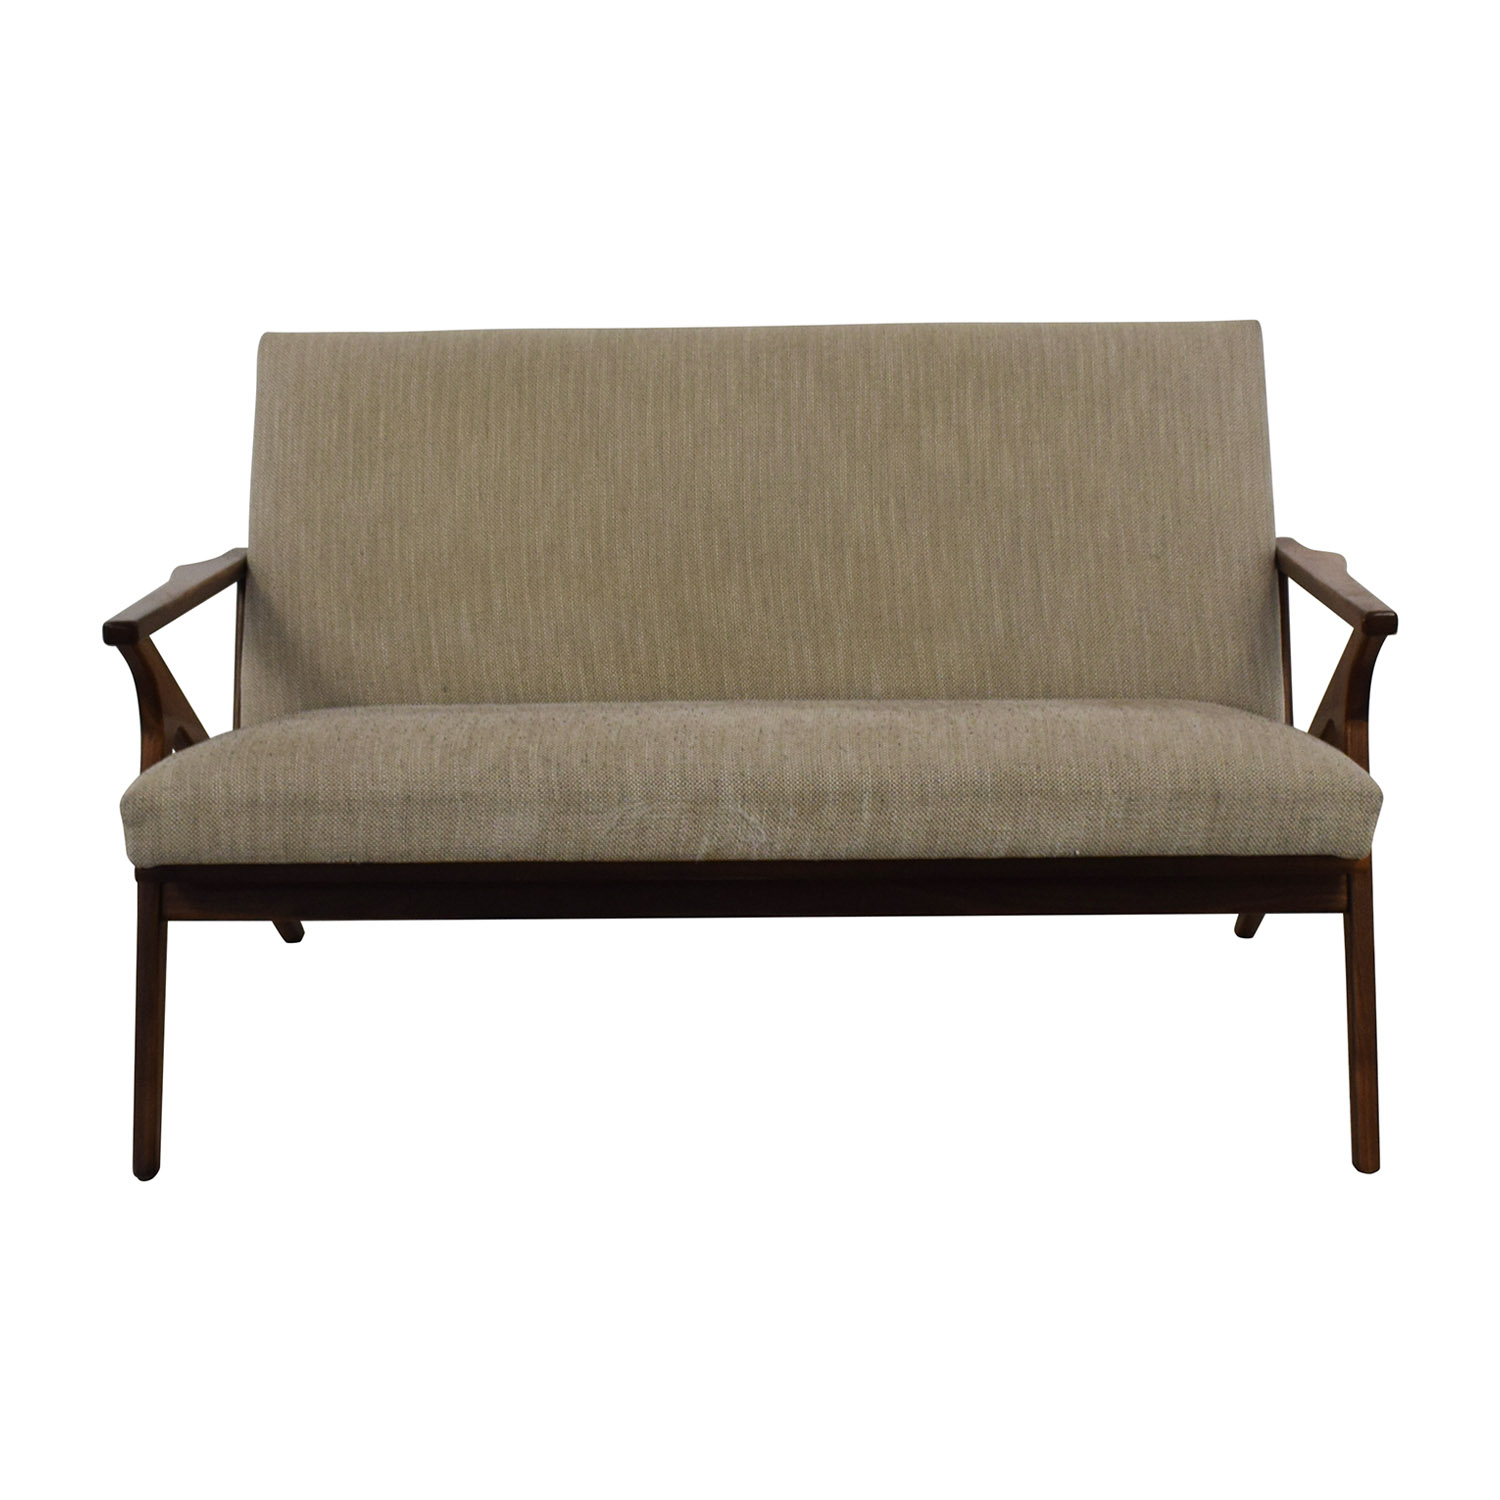 Crate & Barrel Crate & Barrel Cavett Wood Frame Loveseat Sofas